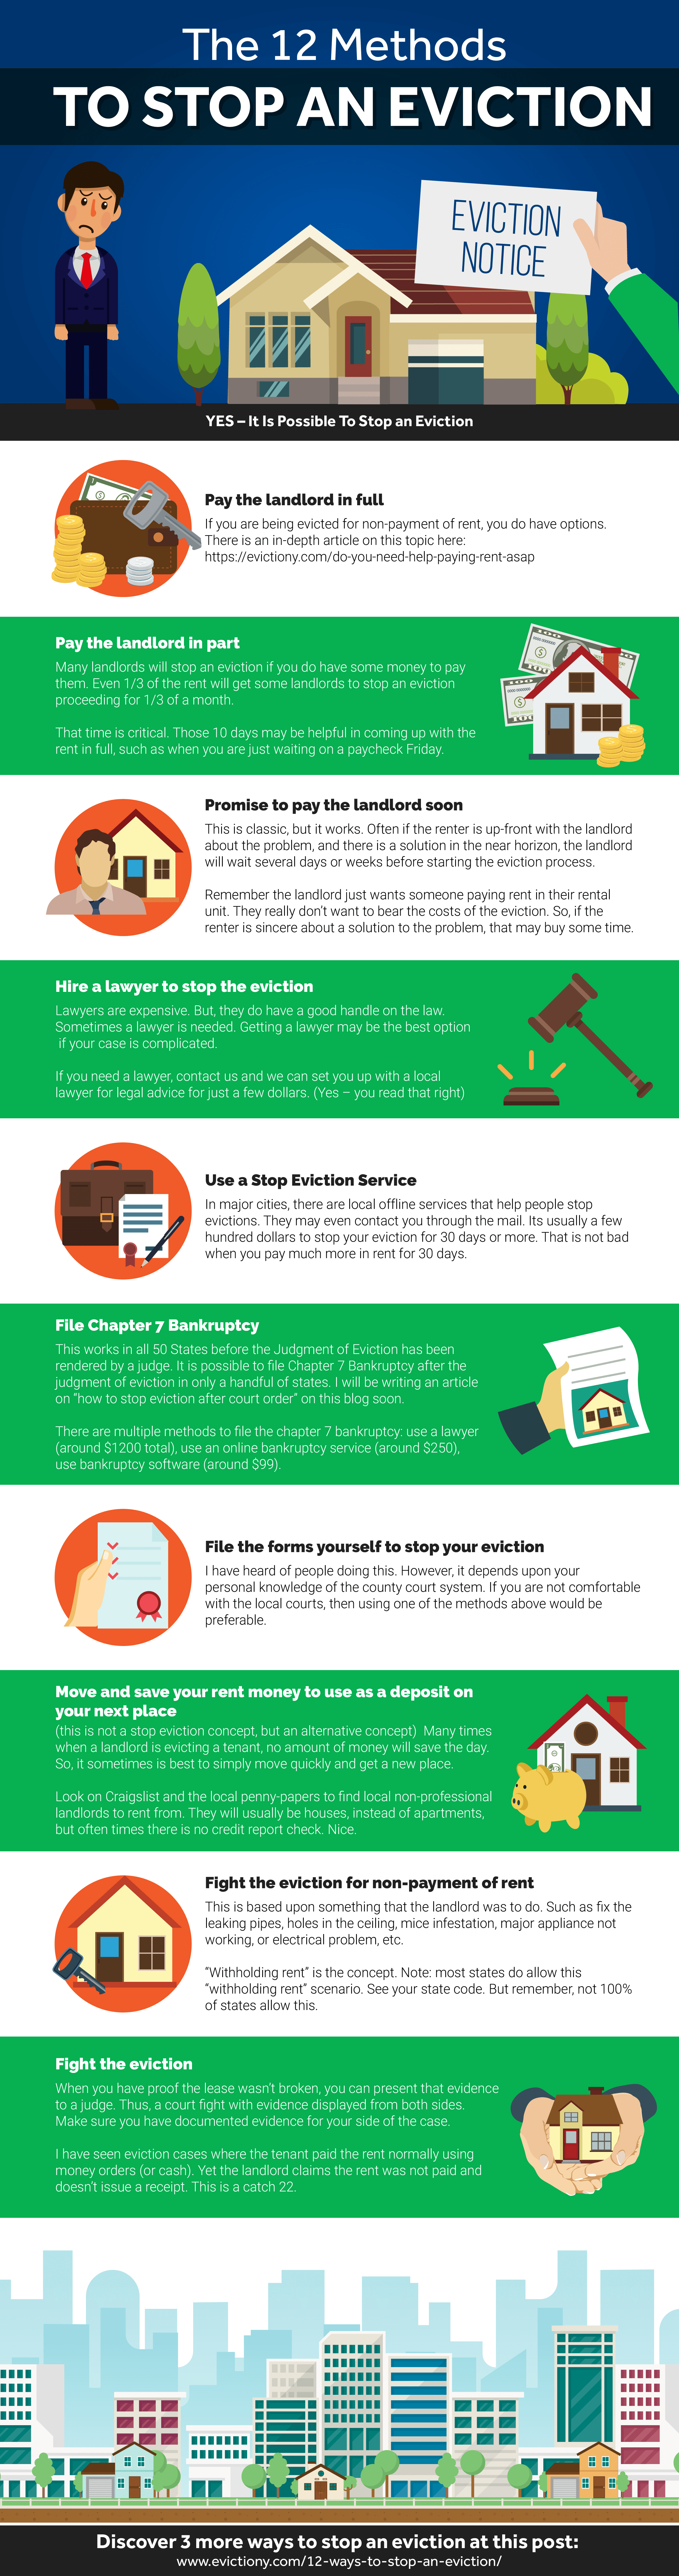 The 12 Ways to Stop an Eviction Infographic